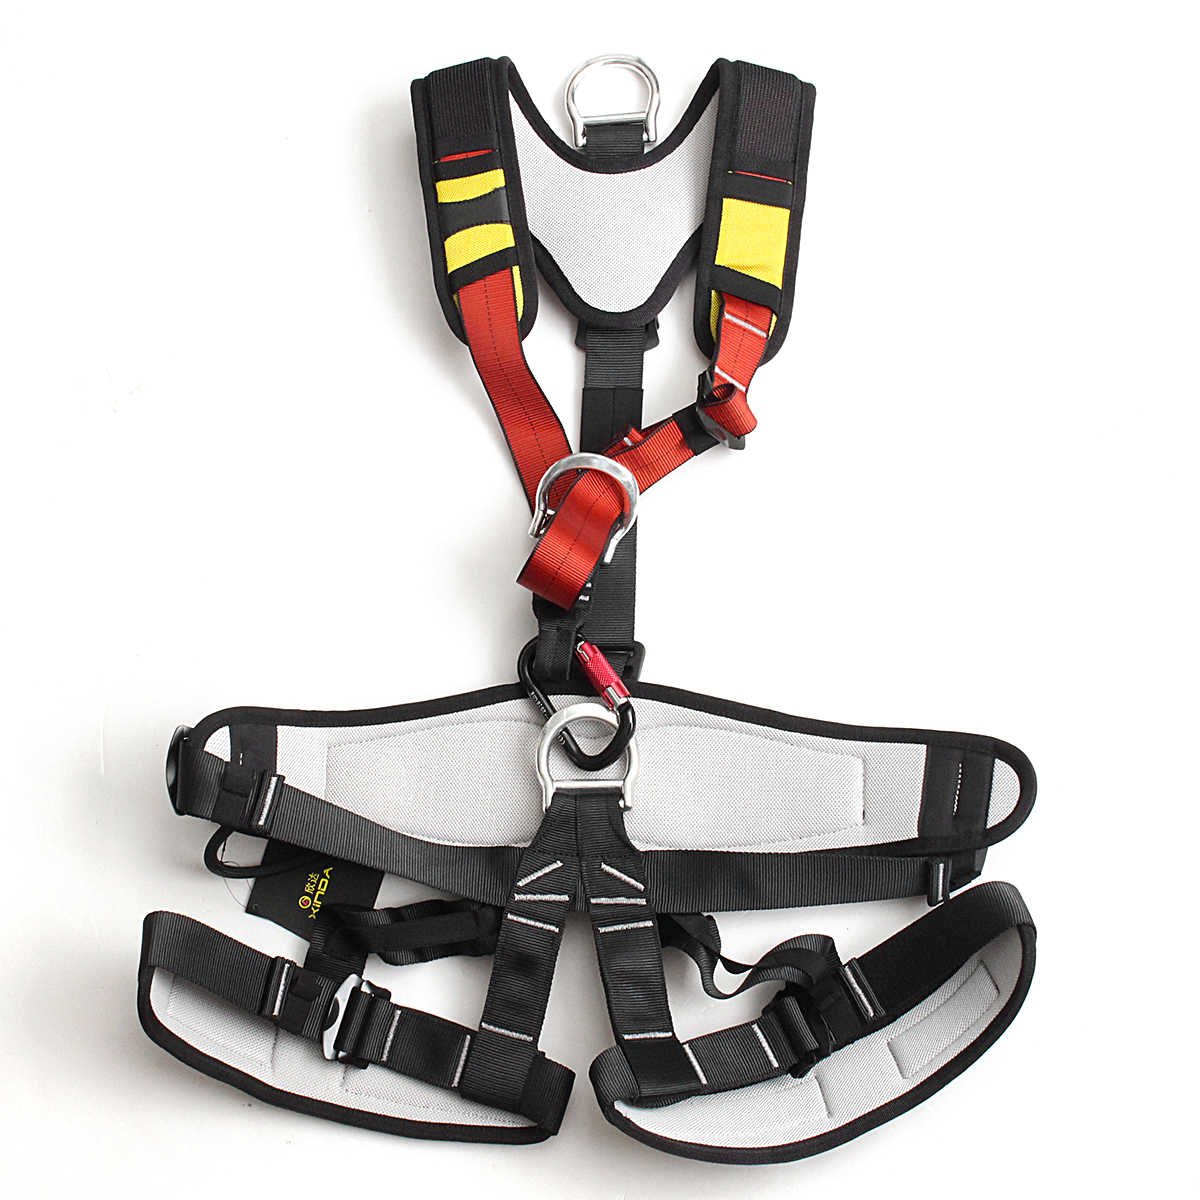 Full Body Safety Rock Mountain Climbing Rappelling Harness Tree Arborist Seat Belt Strap Body Safety Harness Wearing Seat Belt outdoor rock tree climbing rappelling full body safety belt harness black for camping hiking carving equipment climbing acces